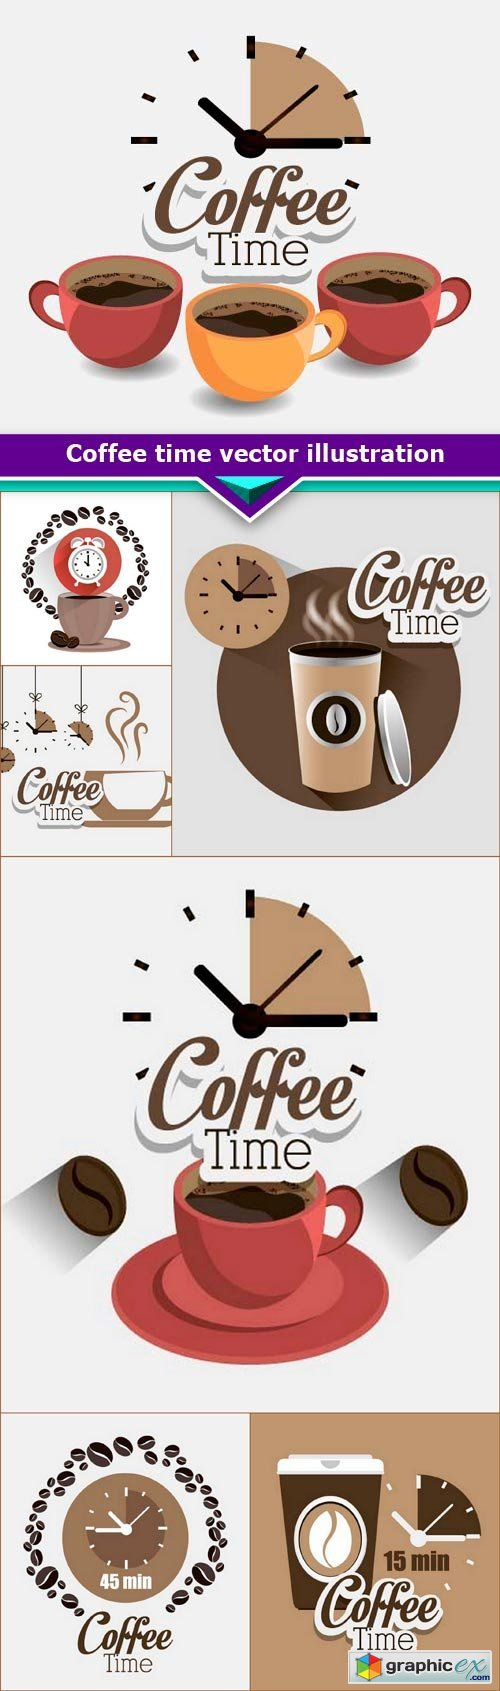 Coffee time vector illustration 7x EPS